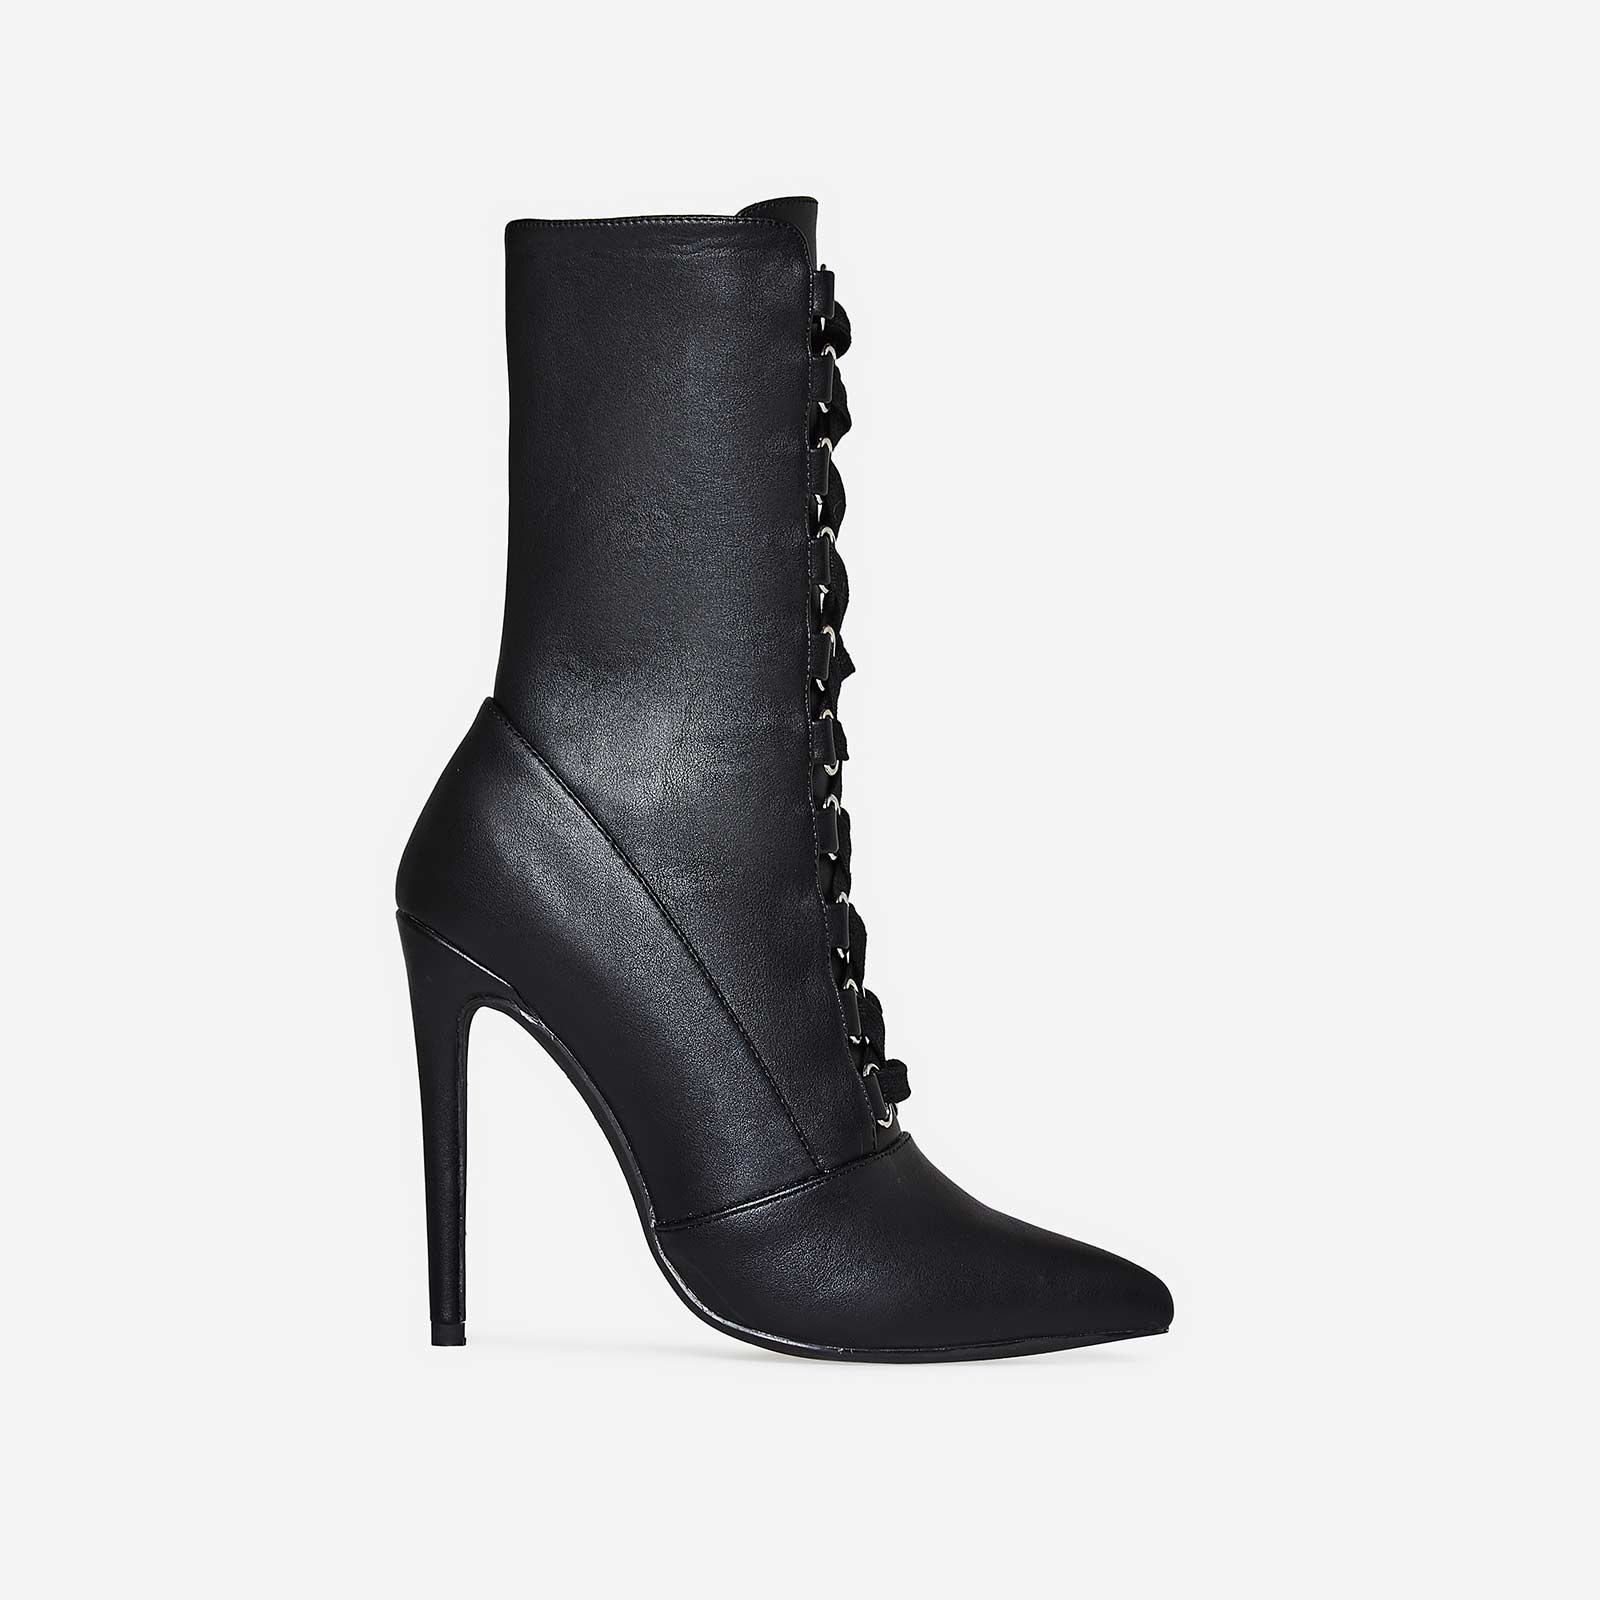 Cleo Pointed Toe Lace Up Ankle Boot In Black Faux Leather